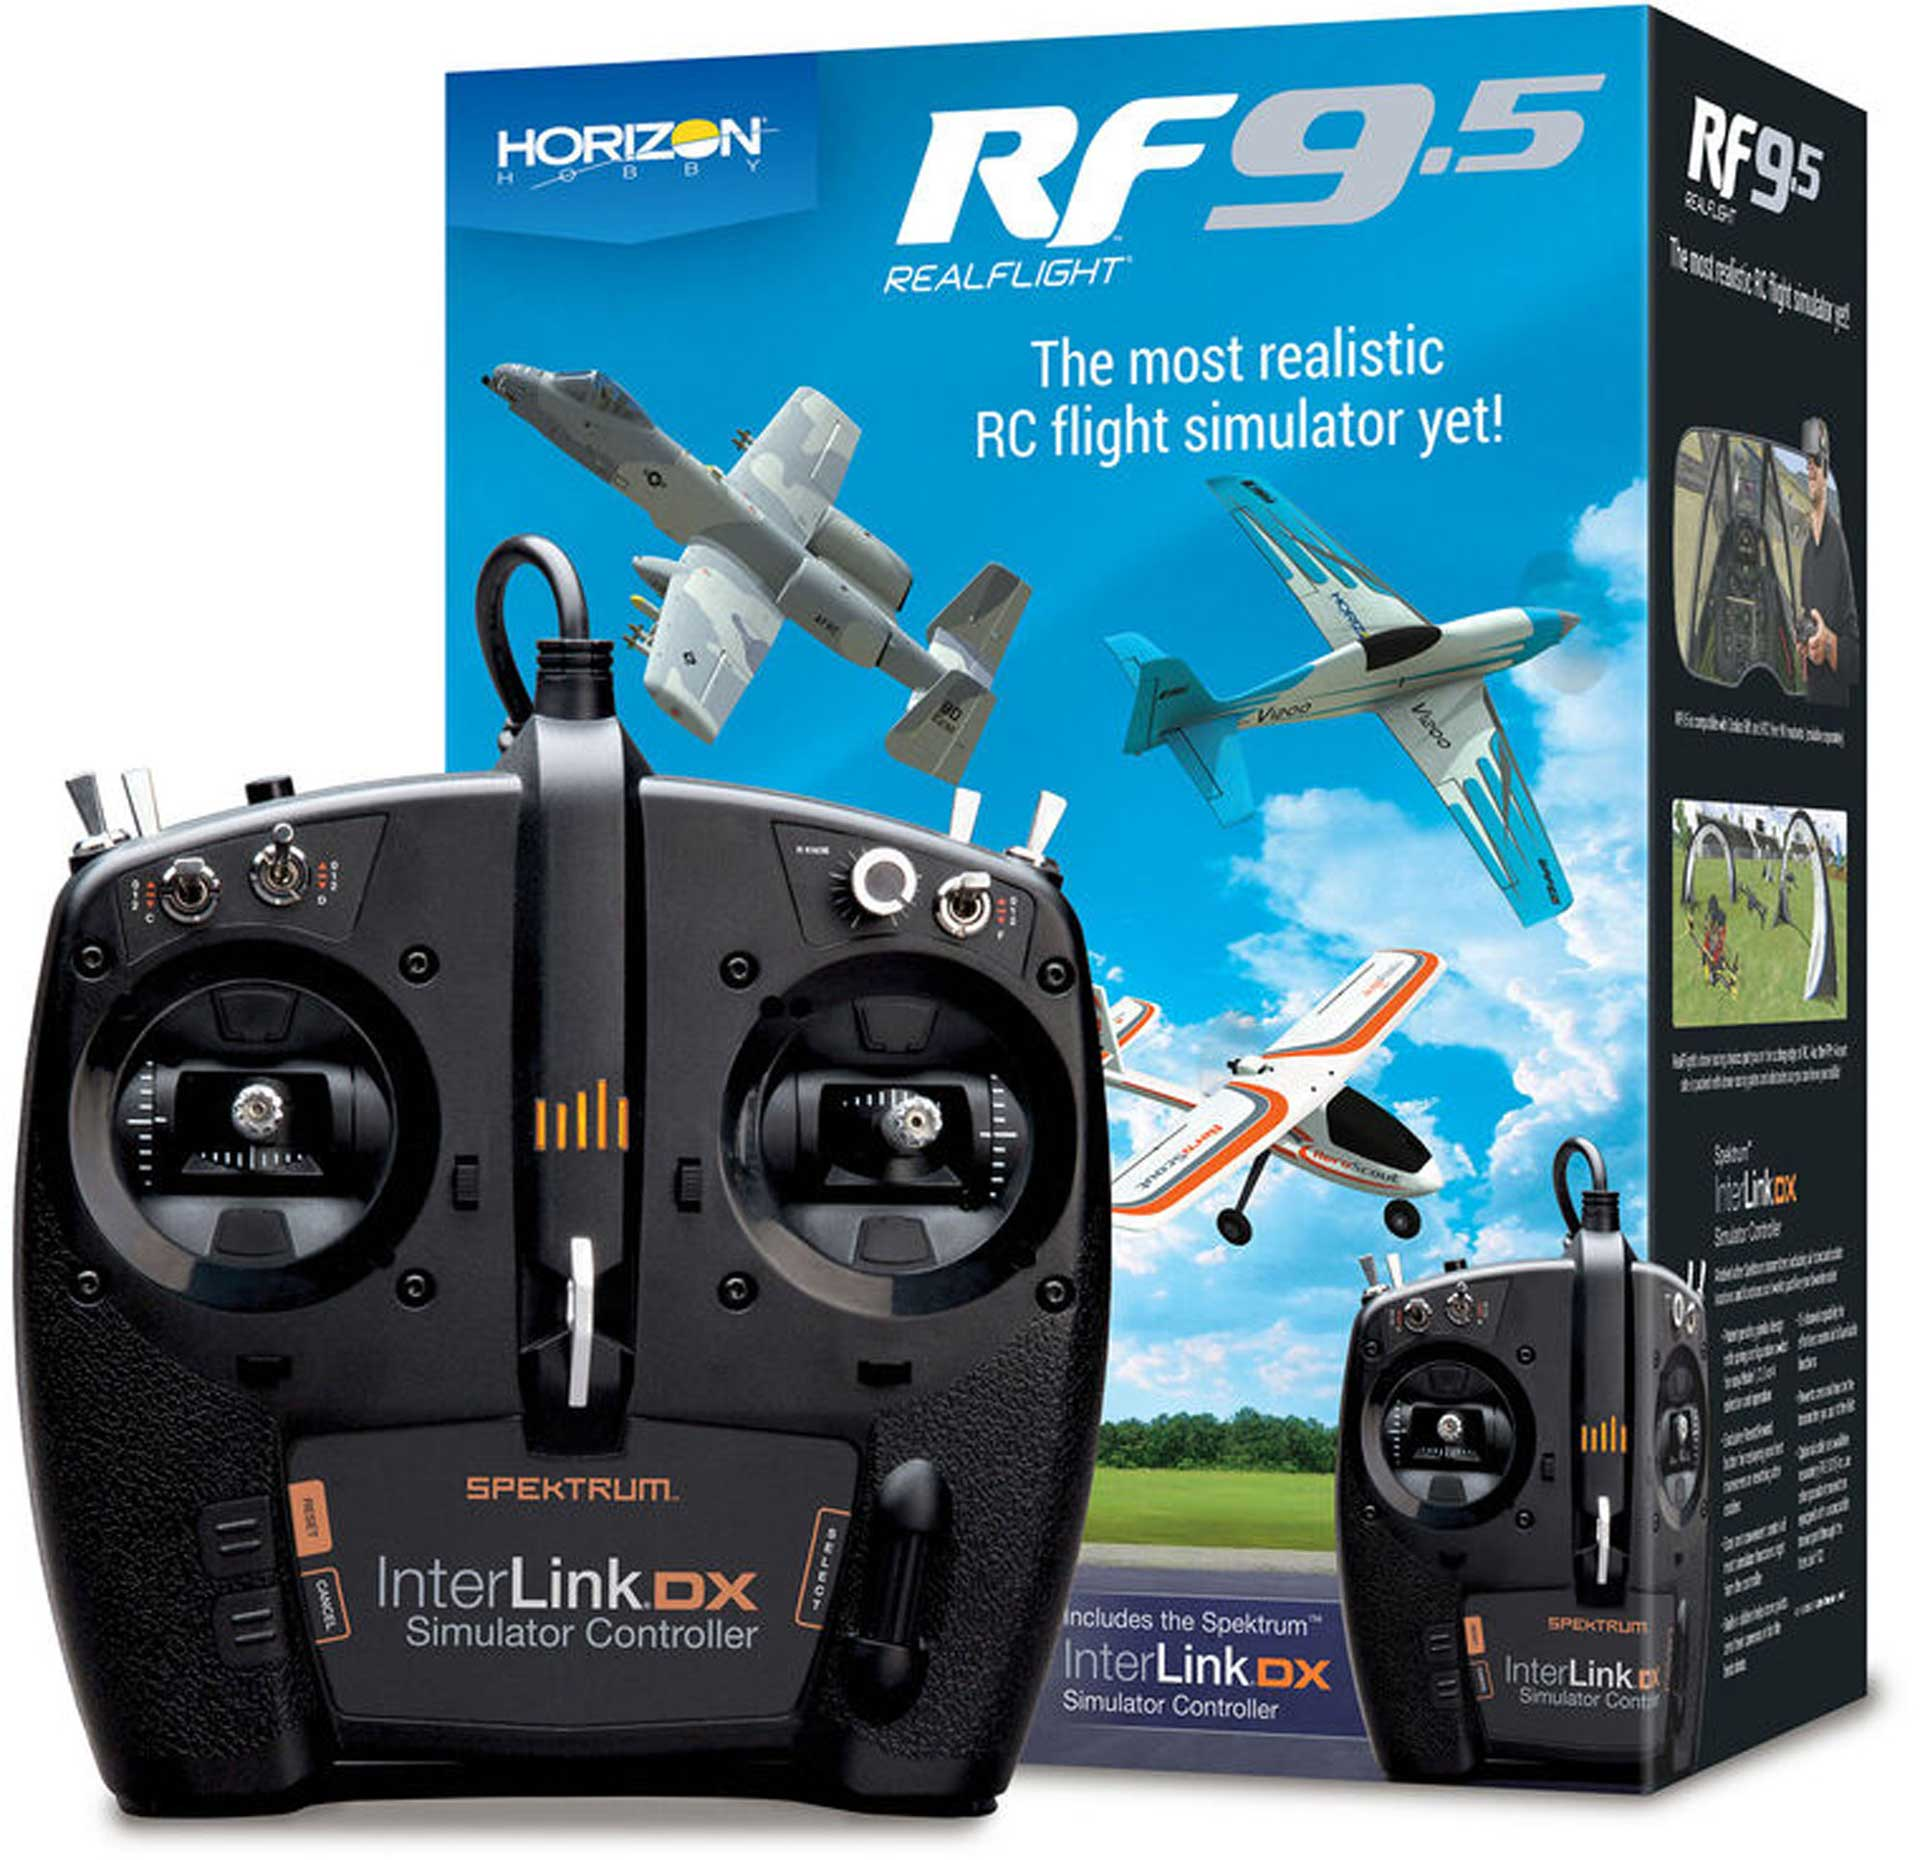 REALFLIGHT RF 9.5 Flugsimulator Software inkl. Spektrum Interlink DX Controller